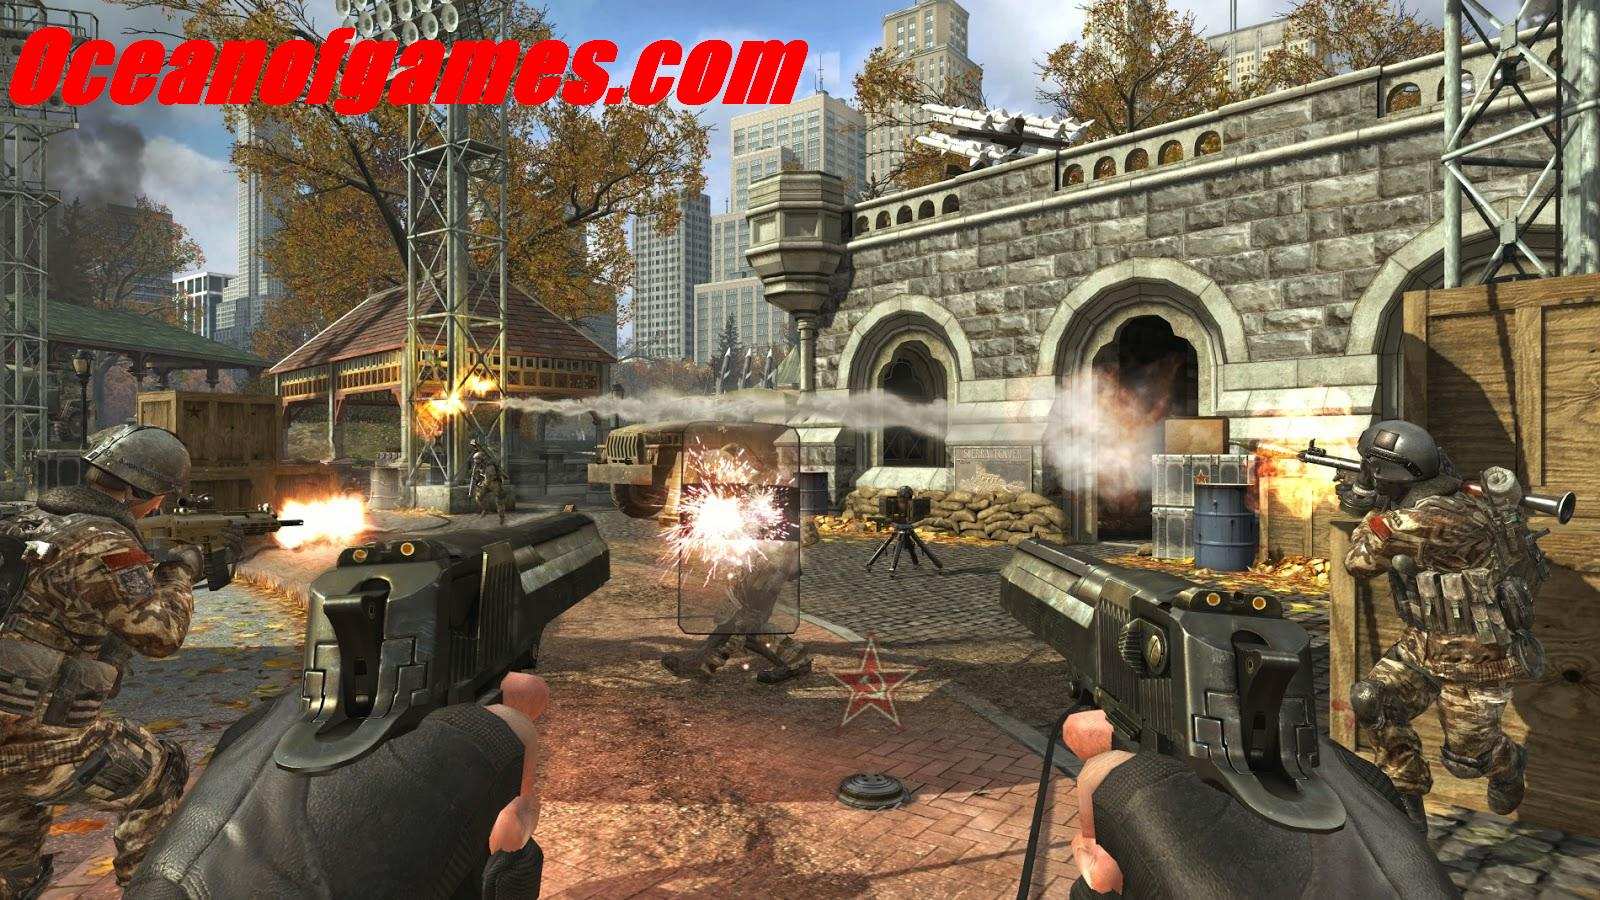 Call of duty 2 pc game setup download